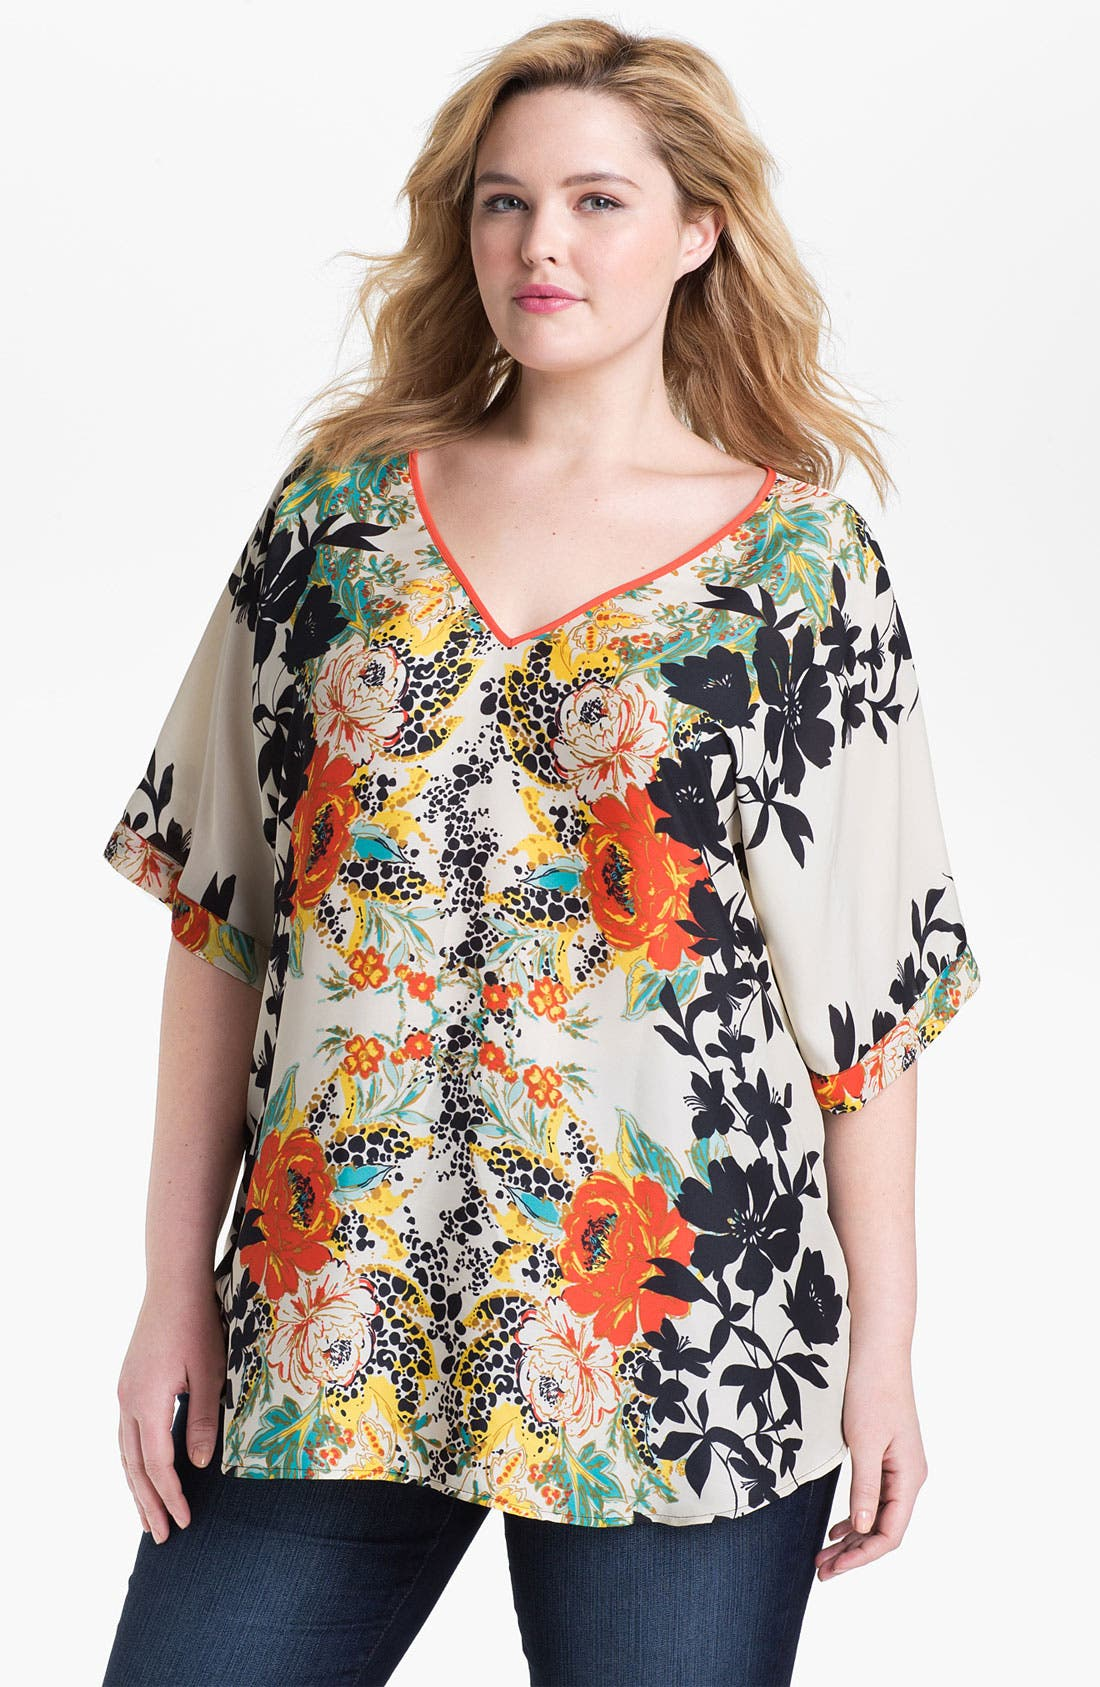 Alternate Image 1 Selected - Daniel Rainn Print V-Neck Top (Plus)